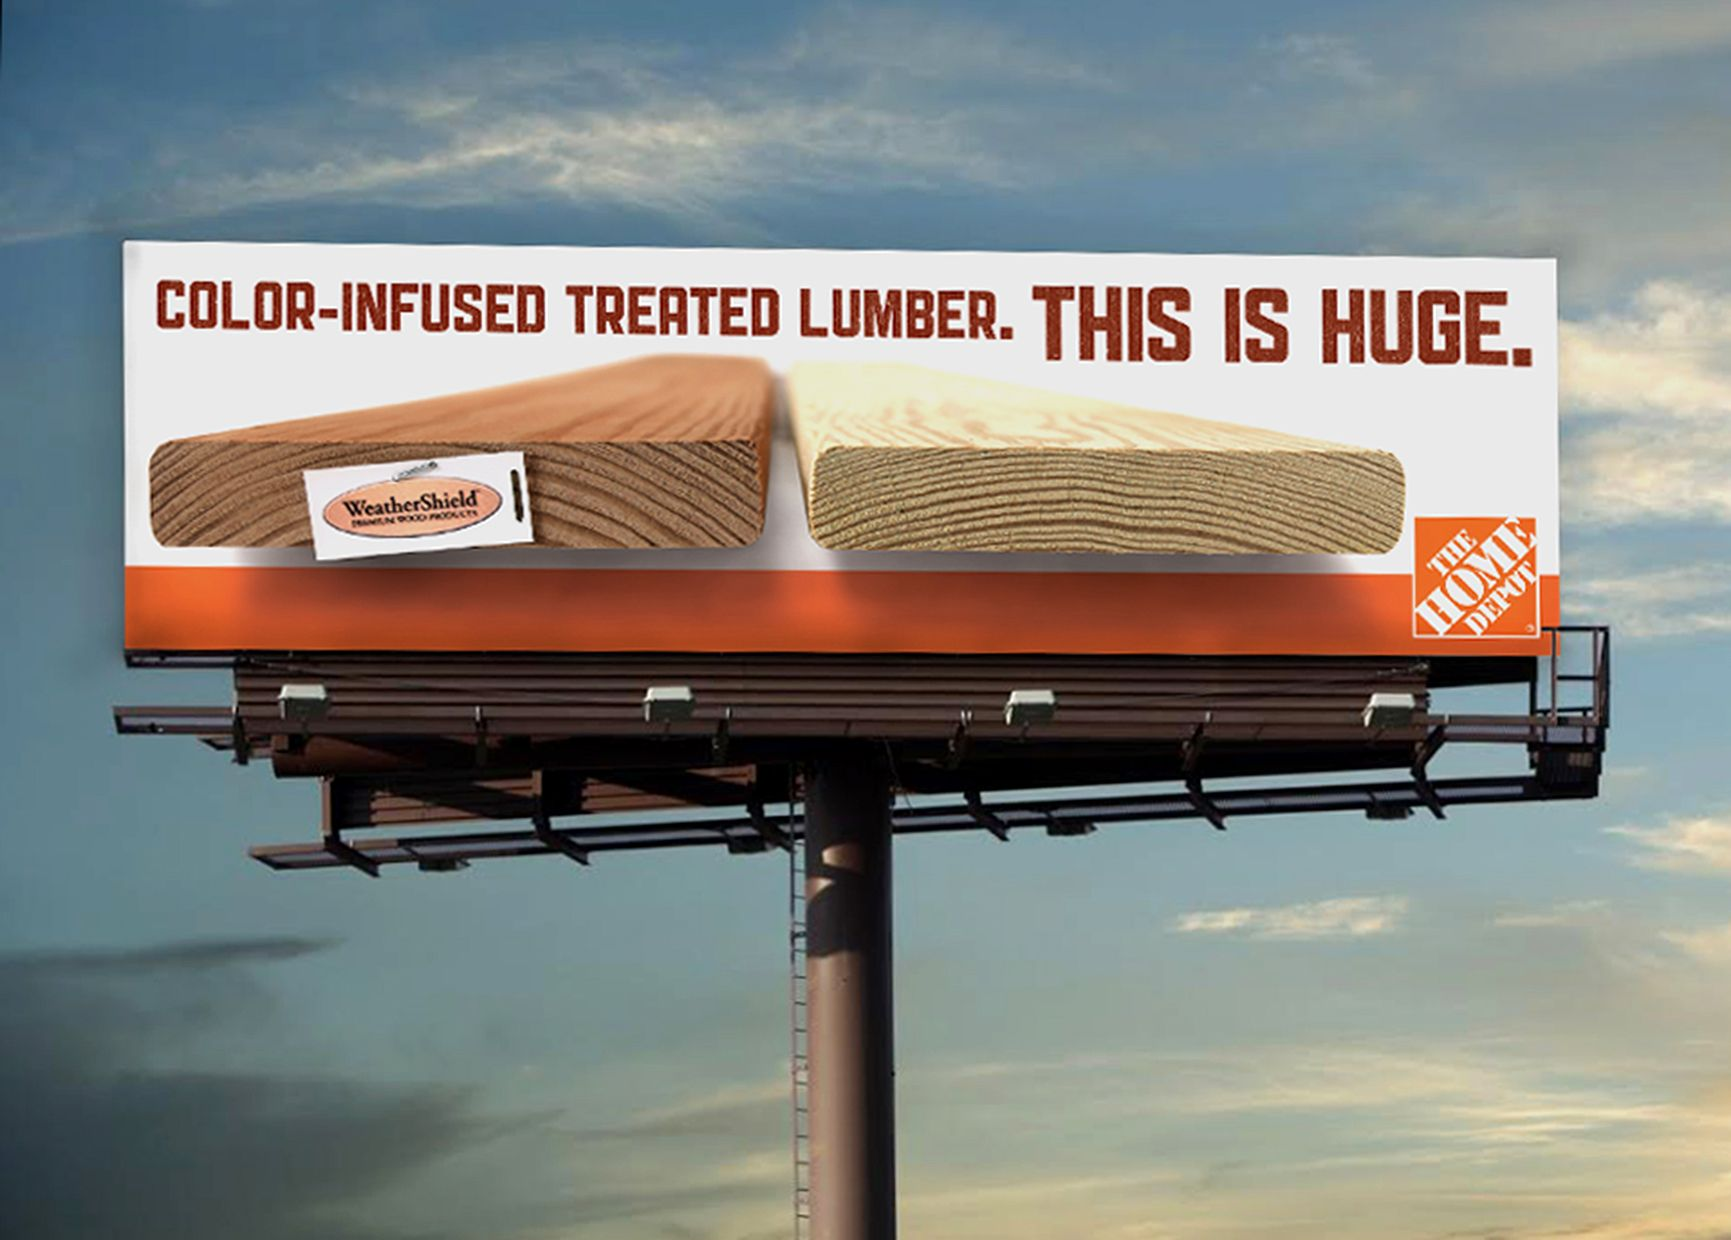 The Home Depot outdoor billboard created by Extra Credit